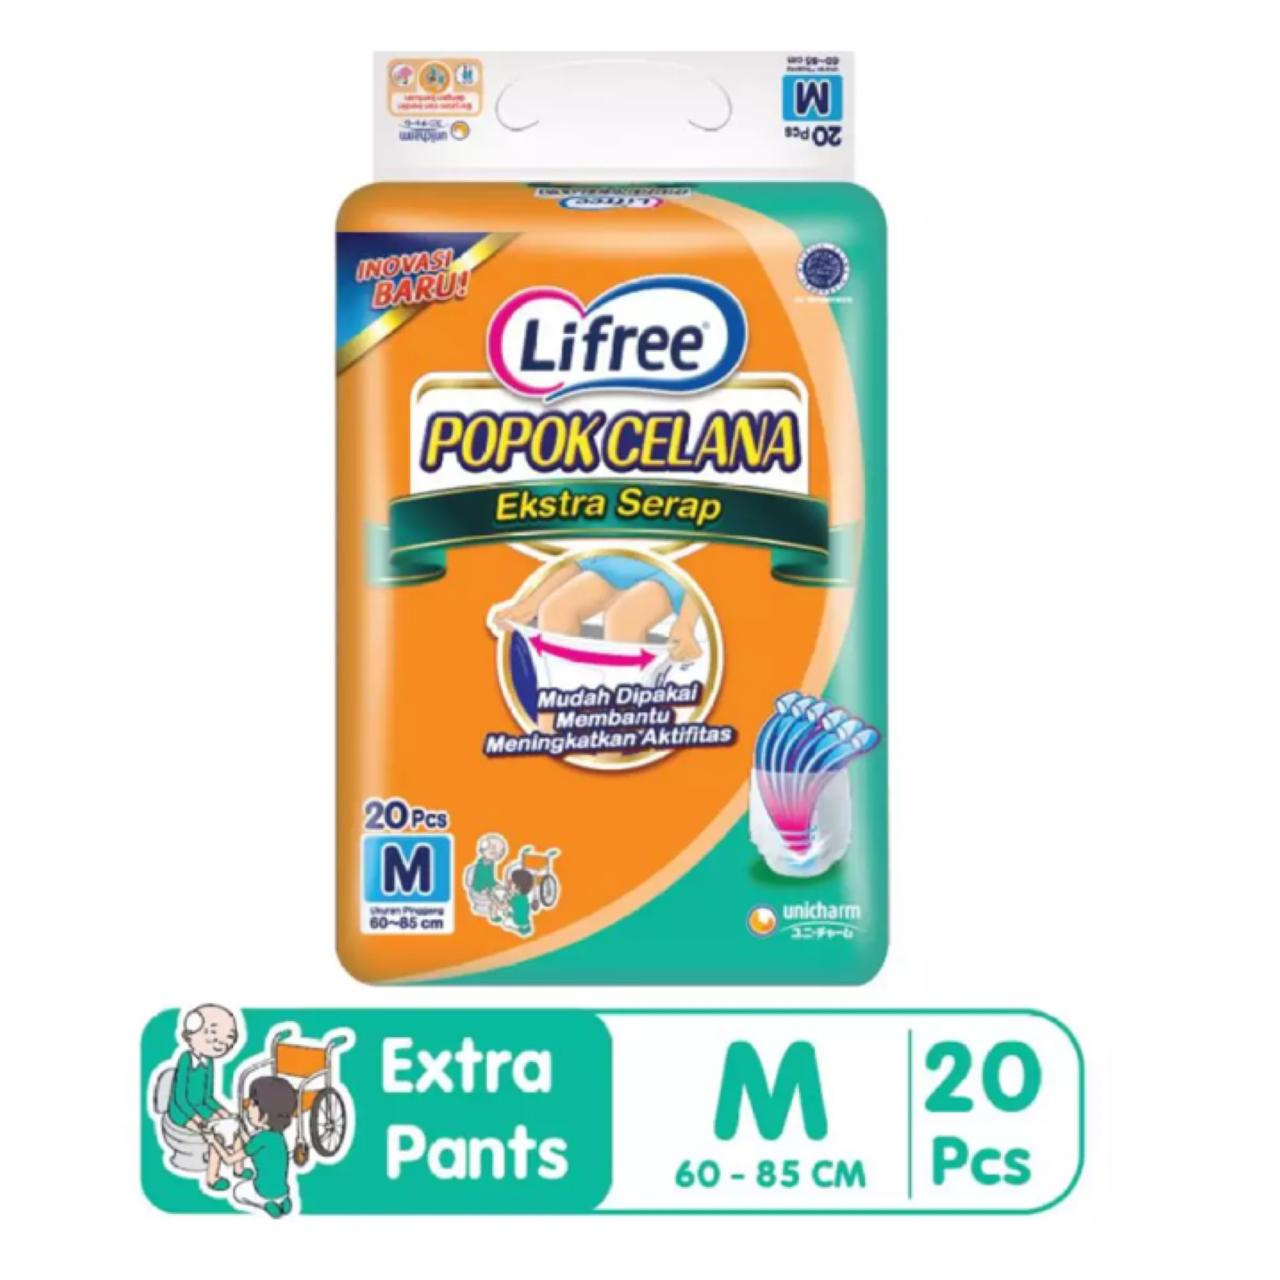 Lifree Extra Ekstra Serap Popok Celana Dewasa Pant Pants Diapers Lansia M20 M 20 By Bloom Official Store.